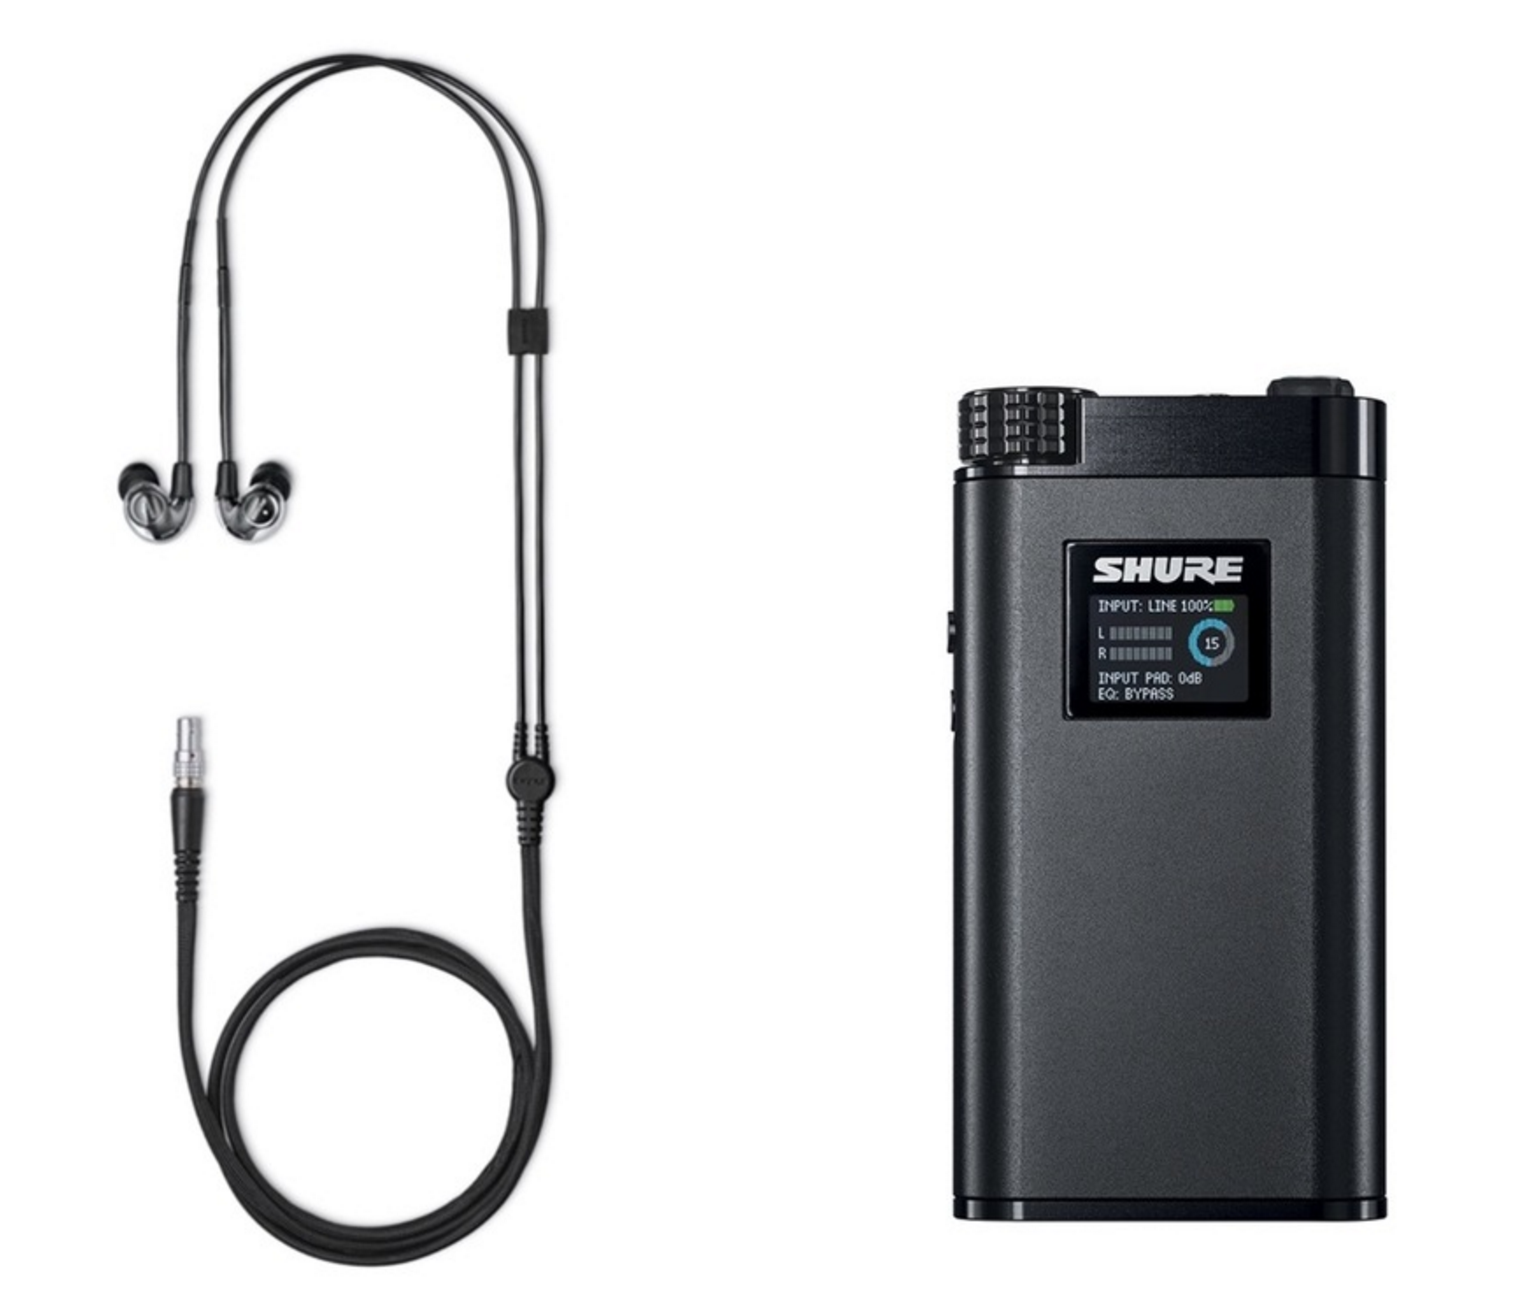 The Shure KSE1500 IEM and Amplifier- the worlds first electrostatic earphone.